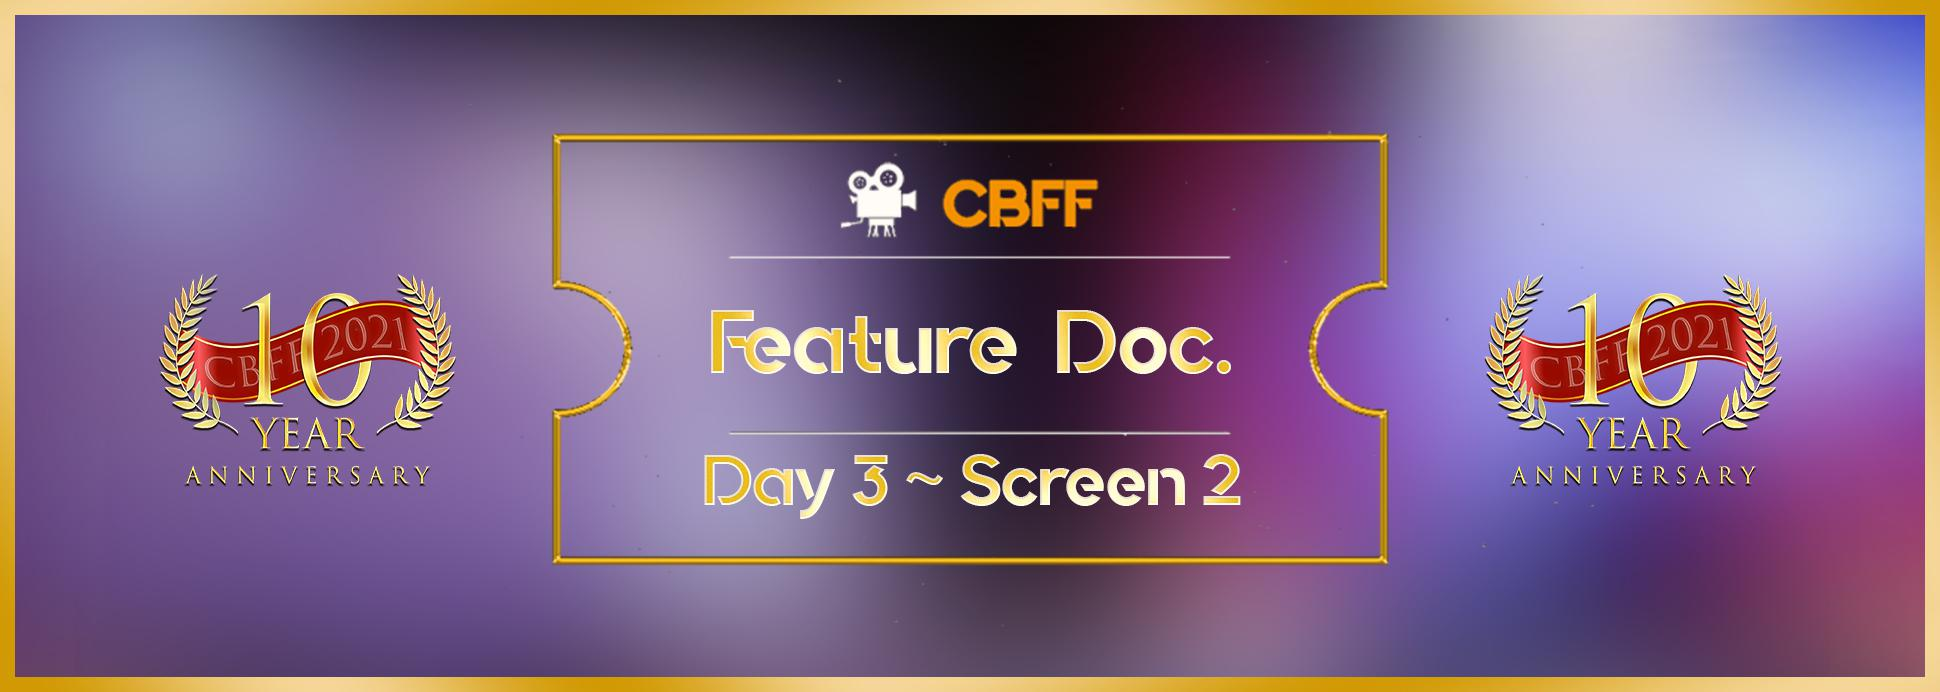 Day 3, Screen 2: Feature Doc.